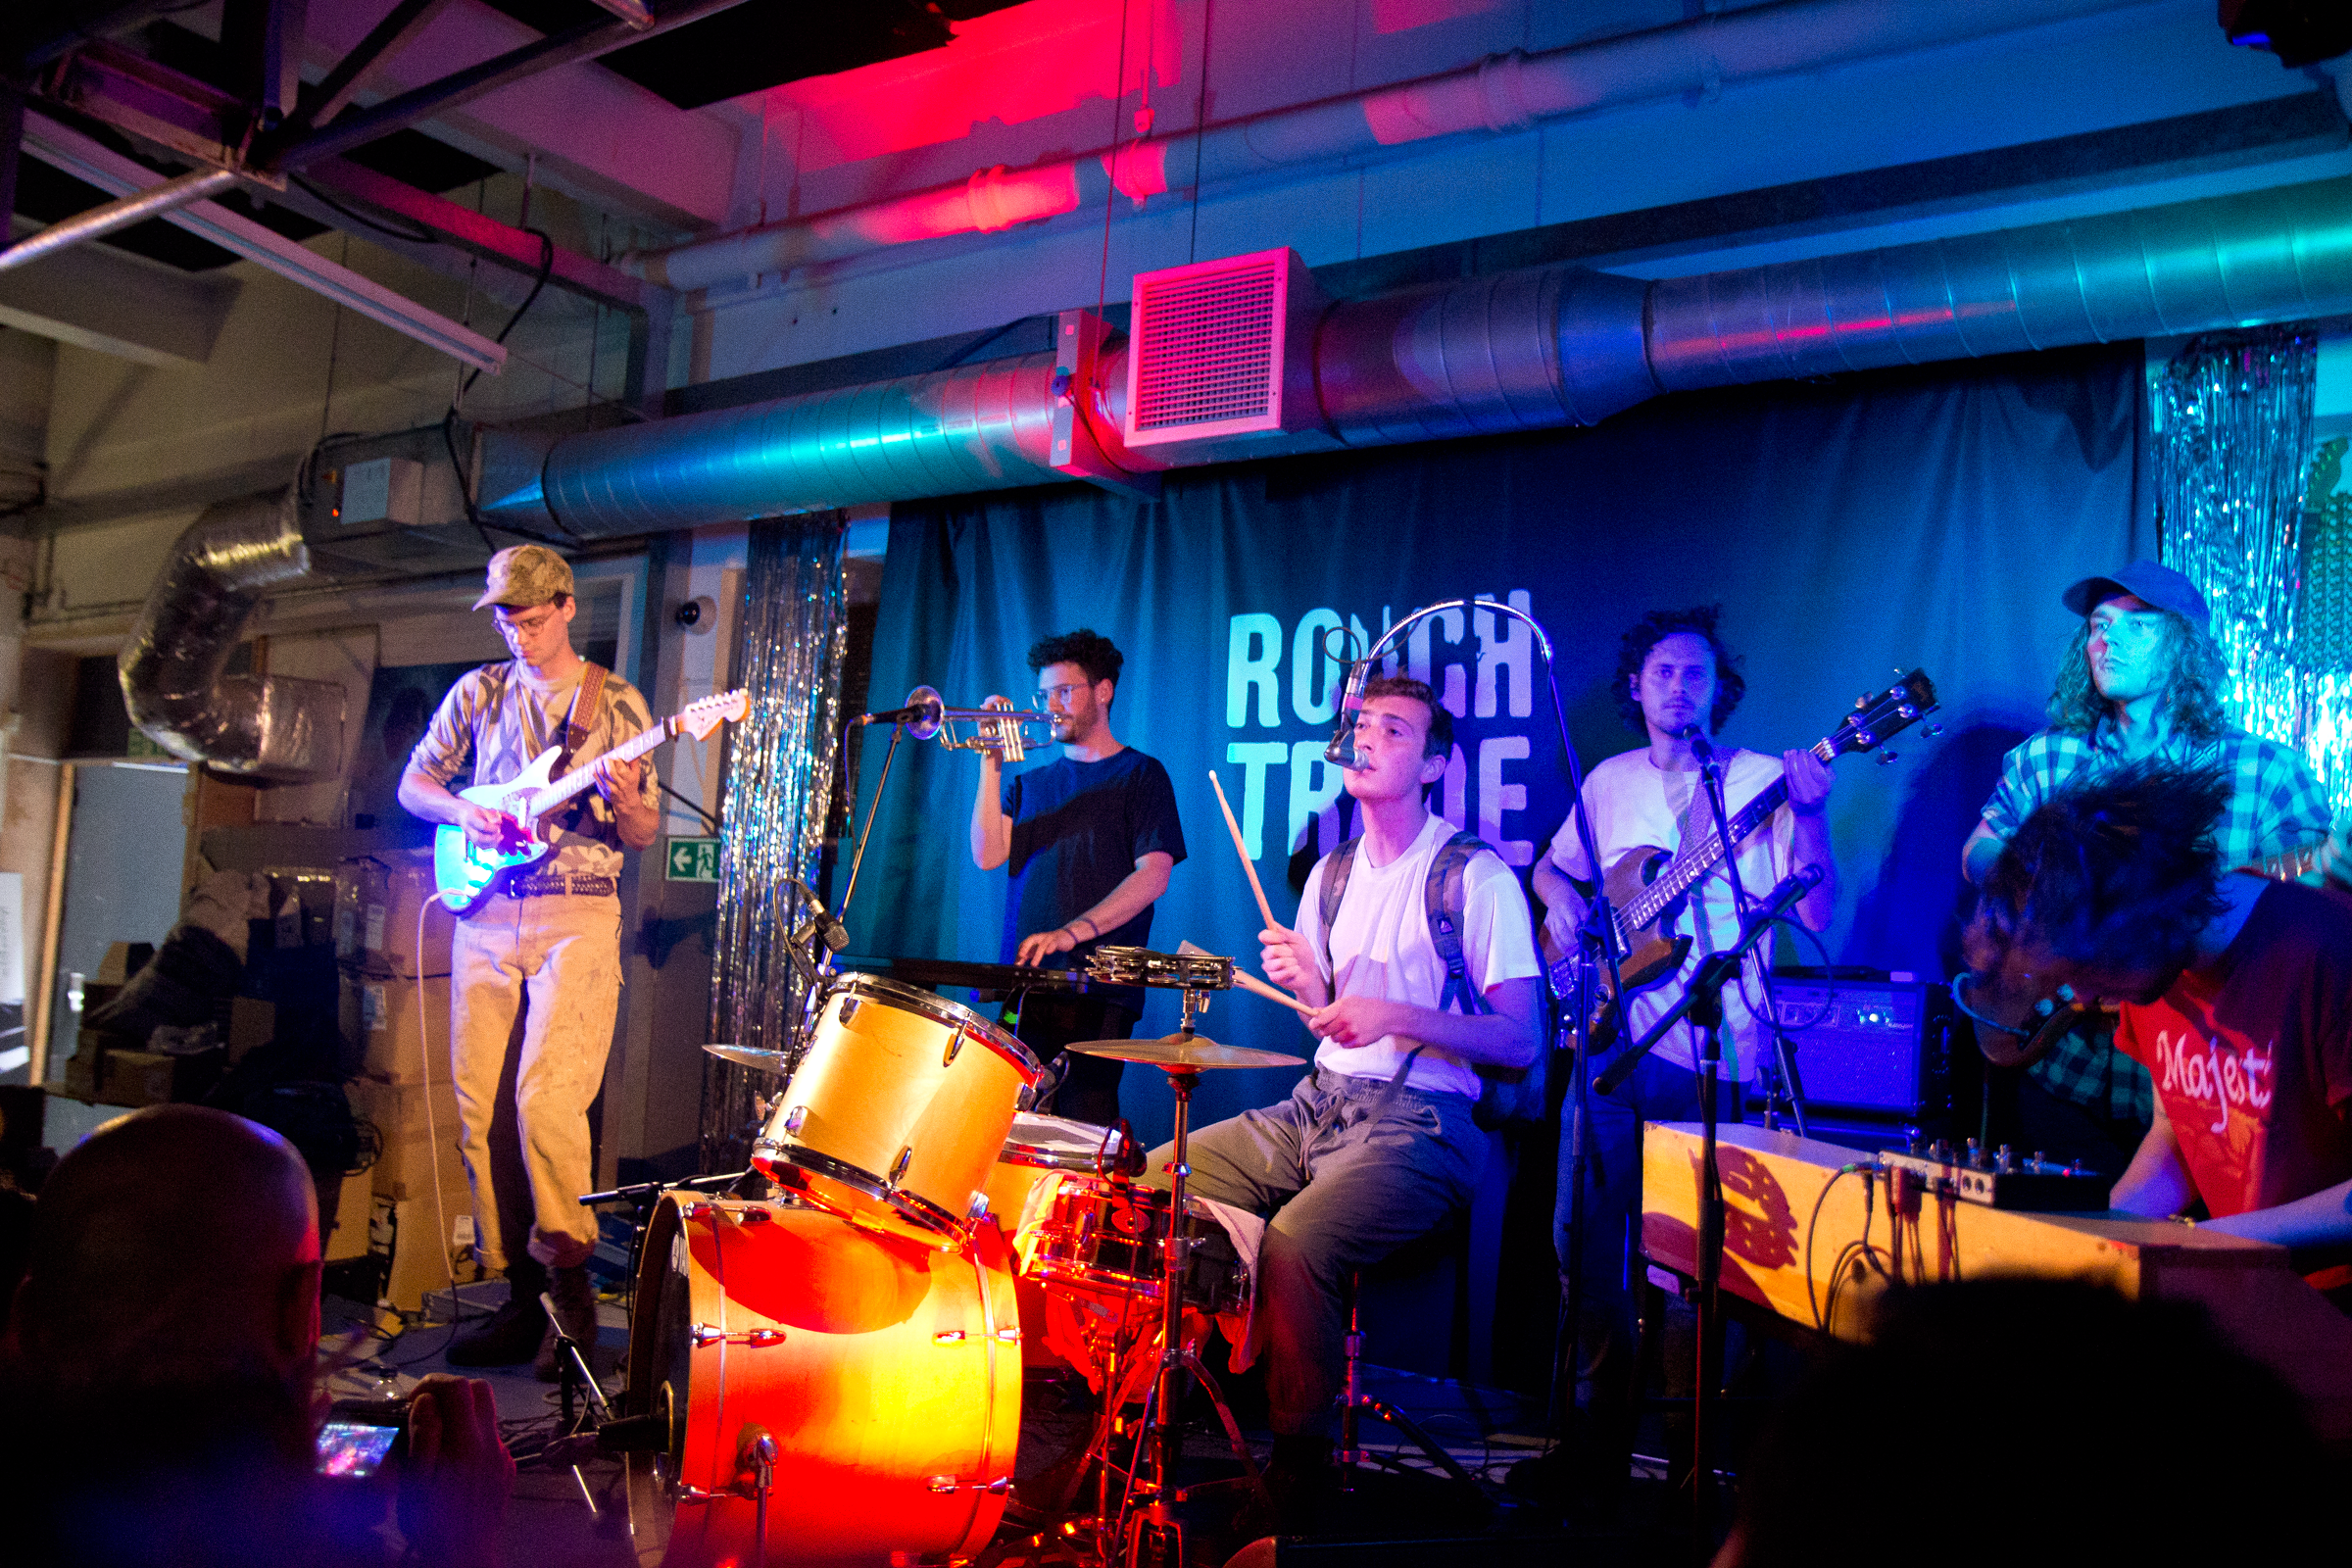 WHITNEY in-store @ Rough Trade East, London